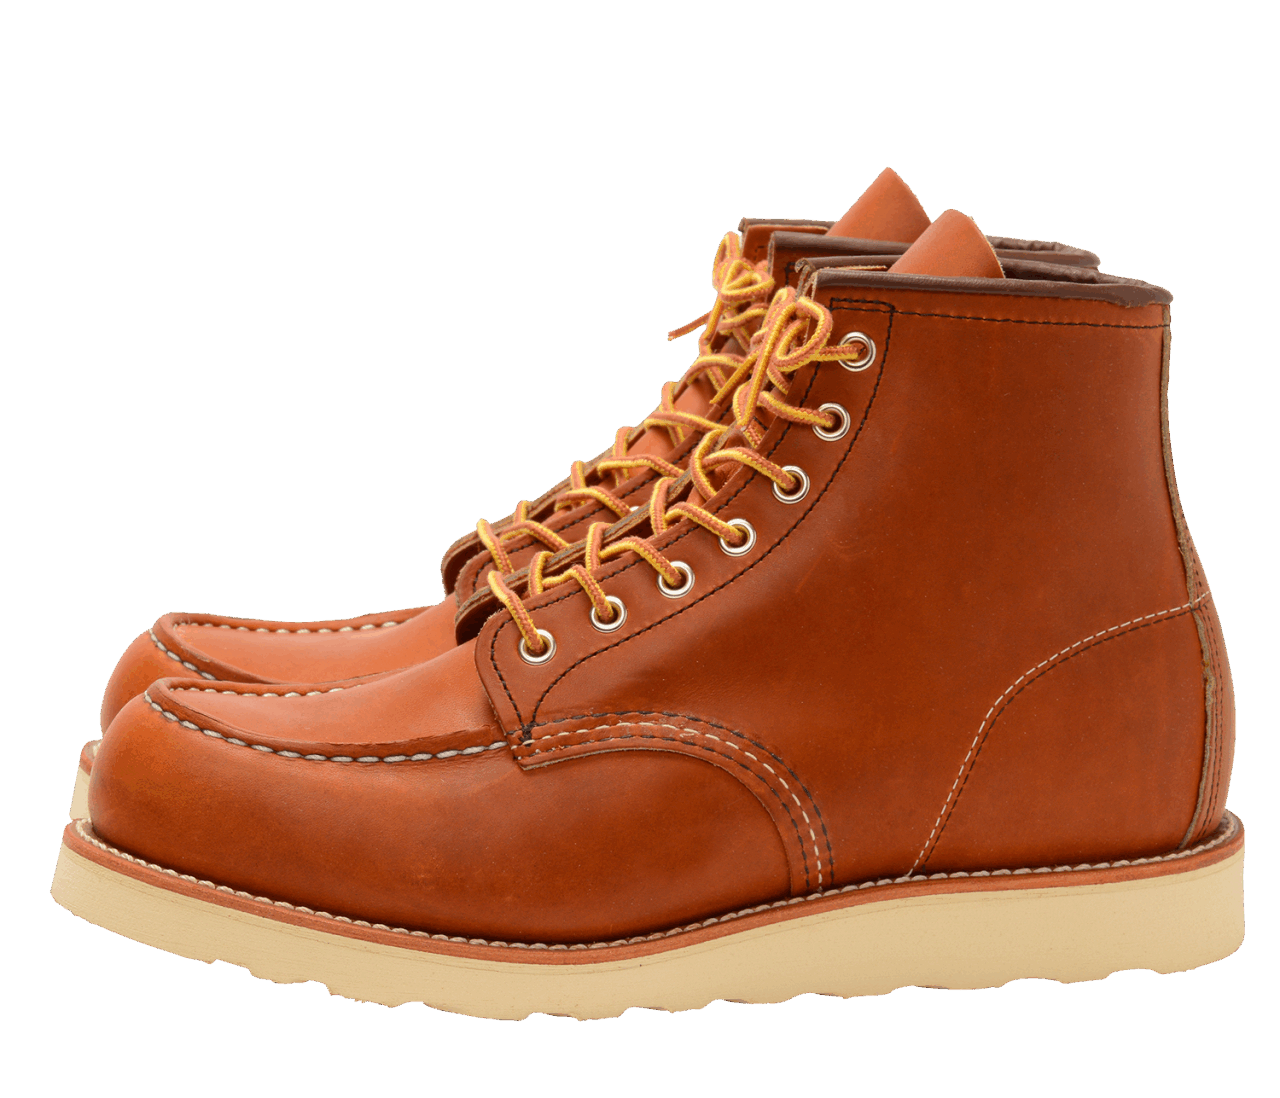 Red Wing 875 Classic Moc